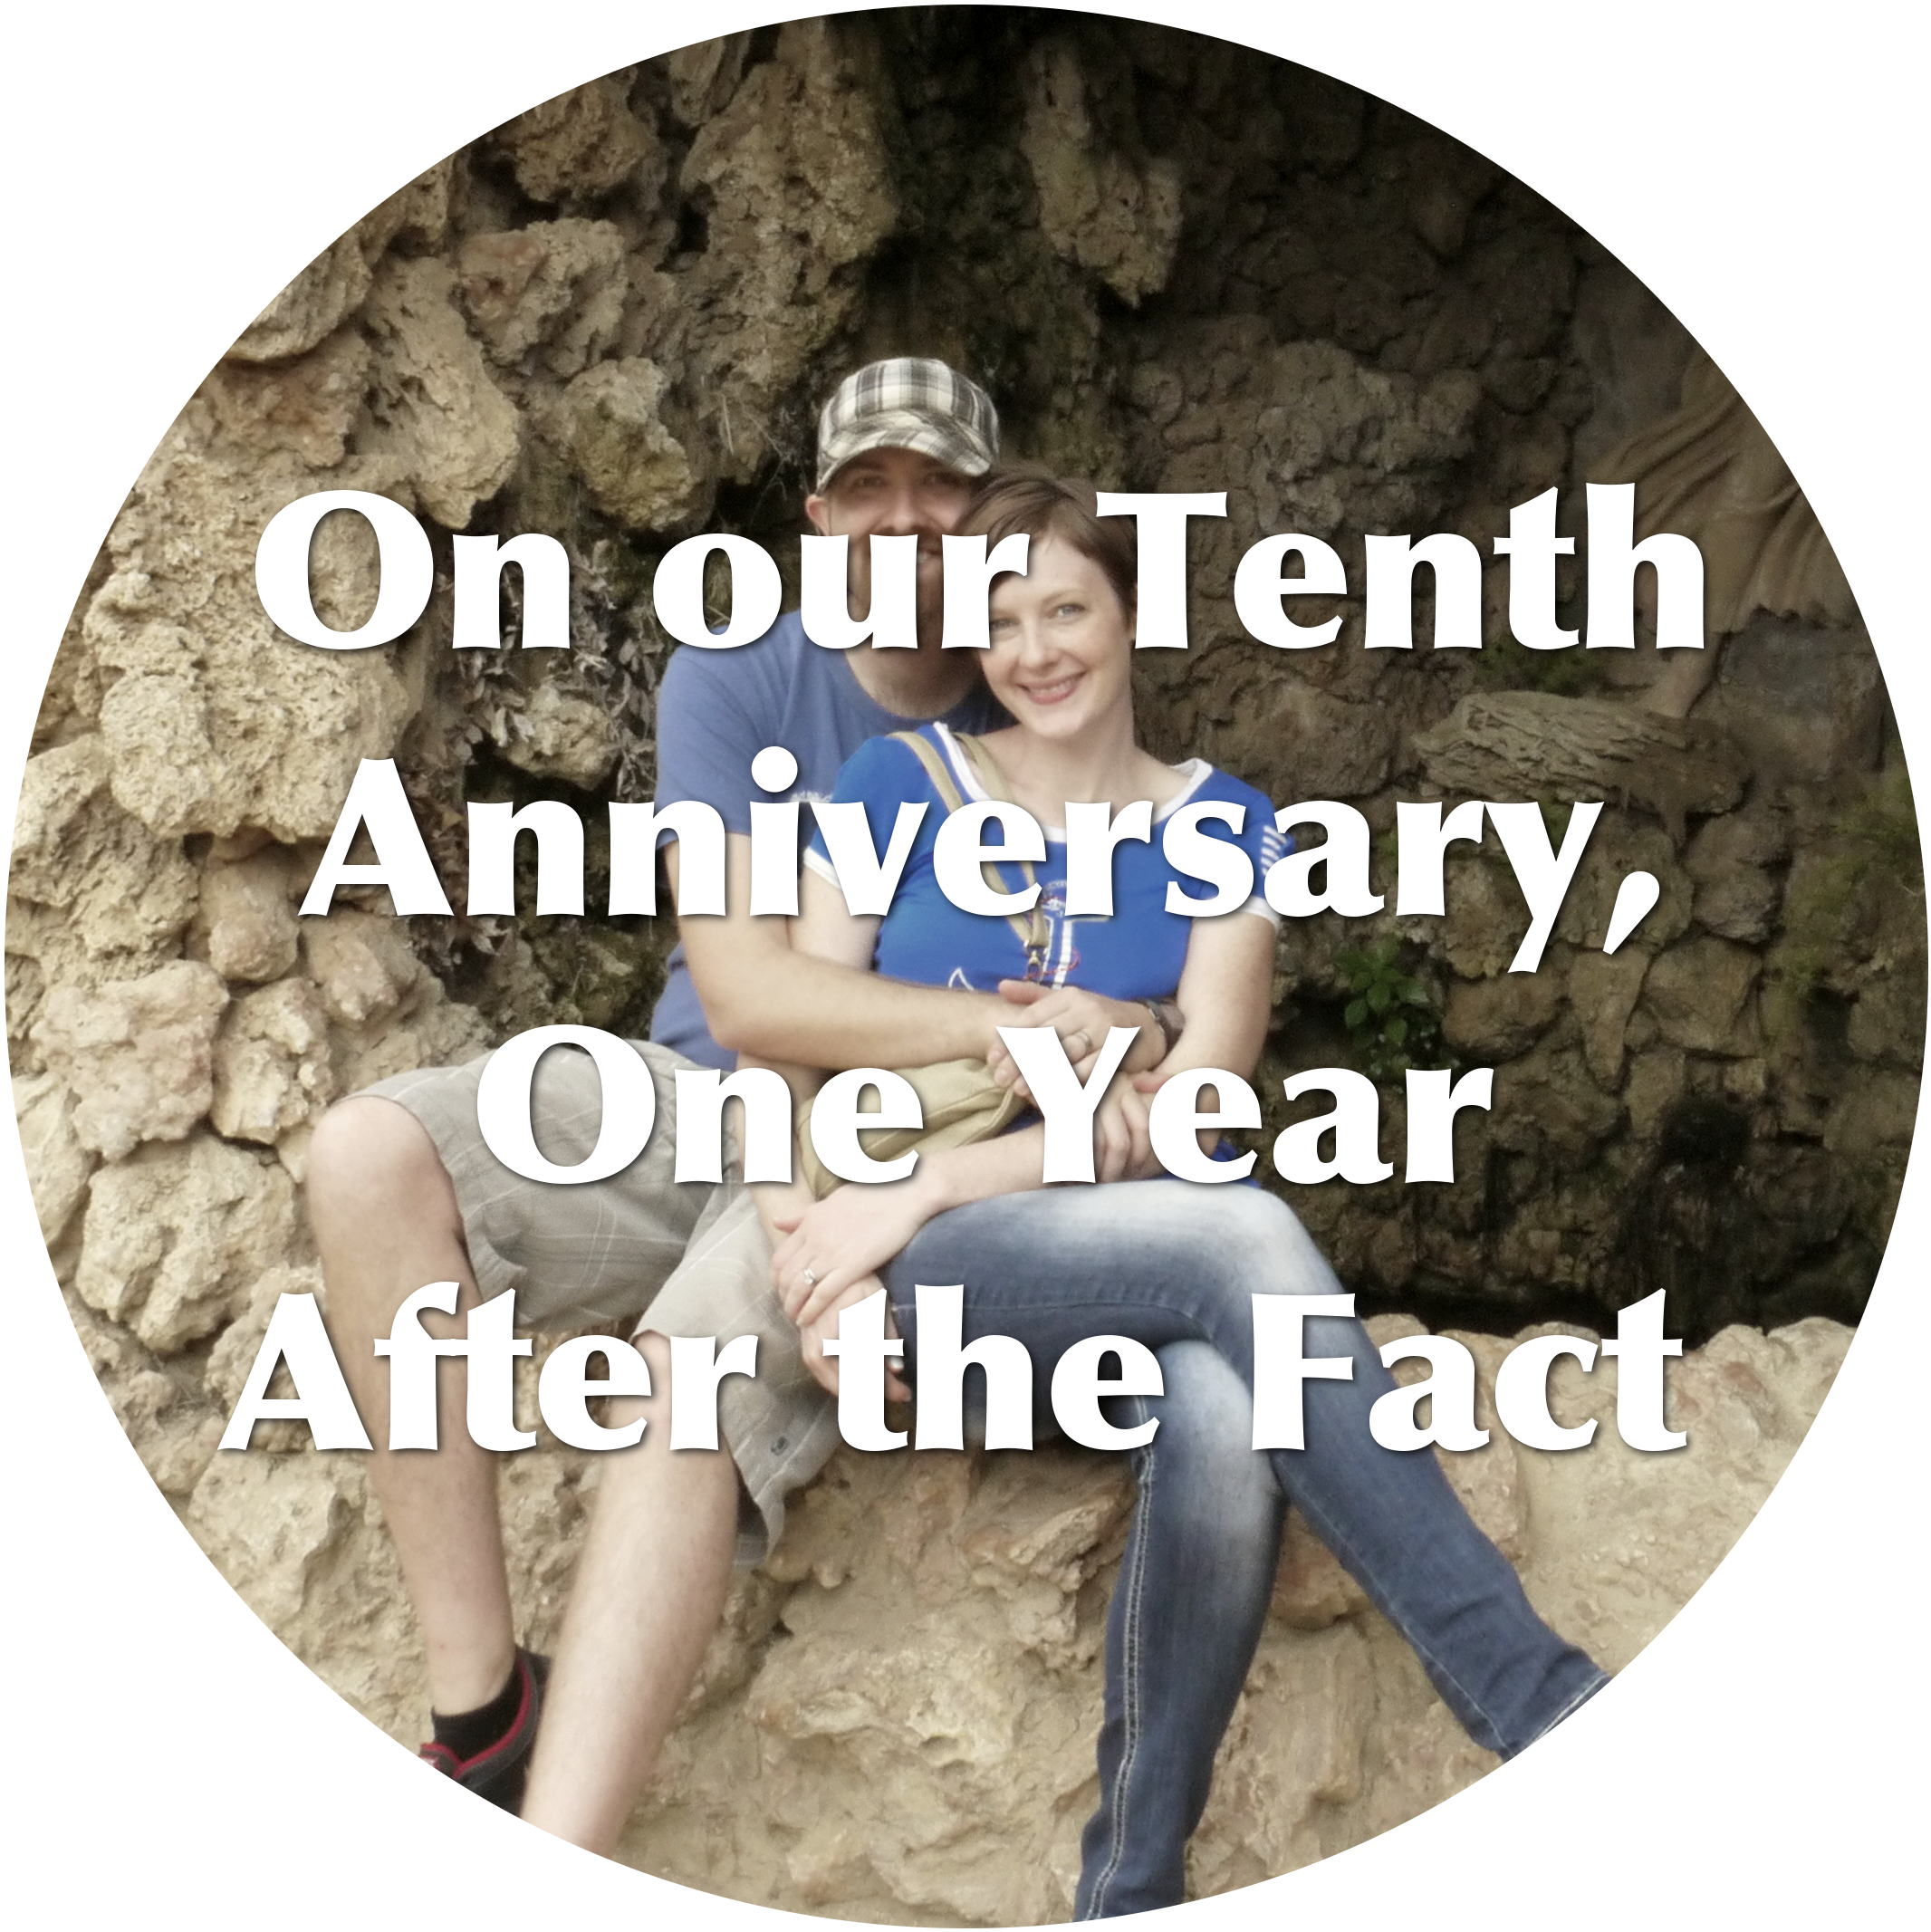 On our Tenth Anniversary, One Year After the Fact